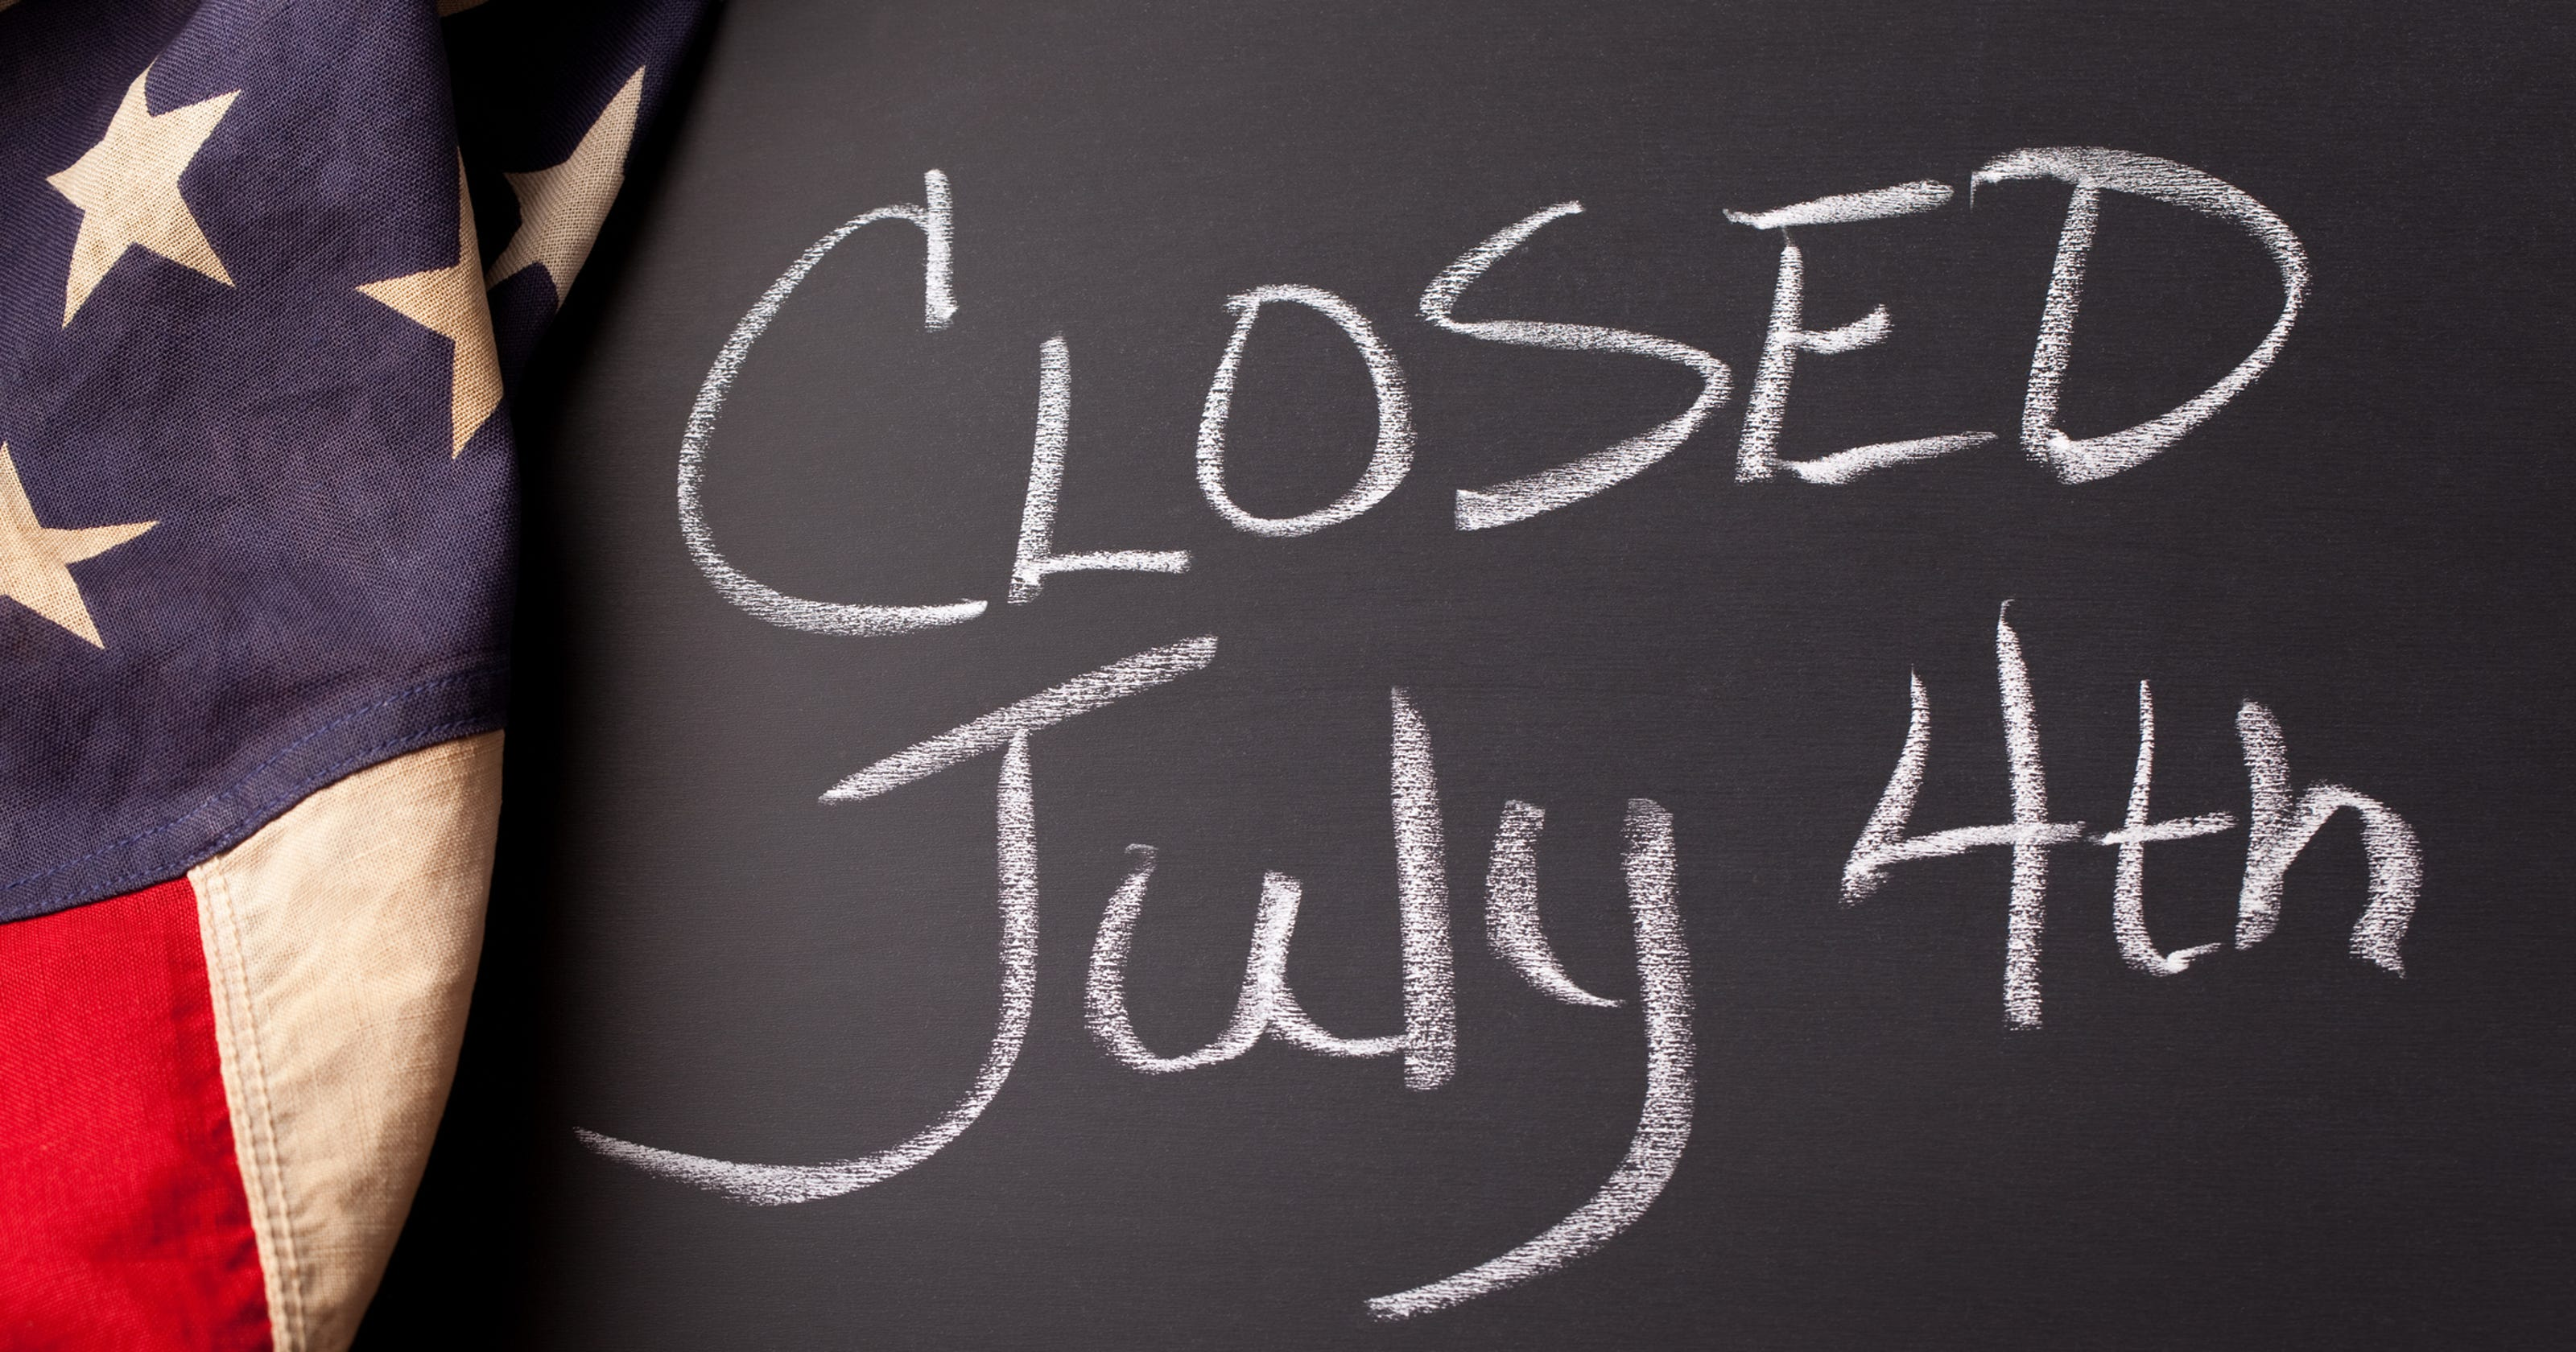 July 4th Independence Day: What's open and closed?